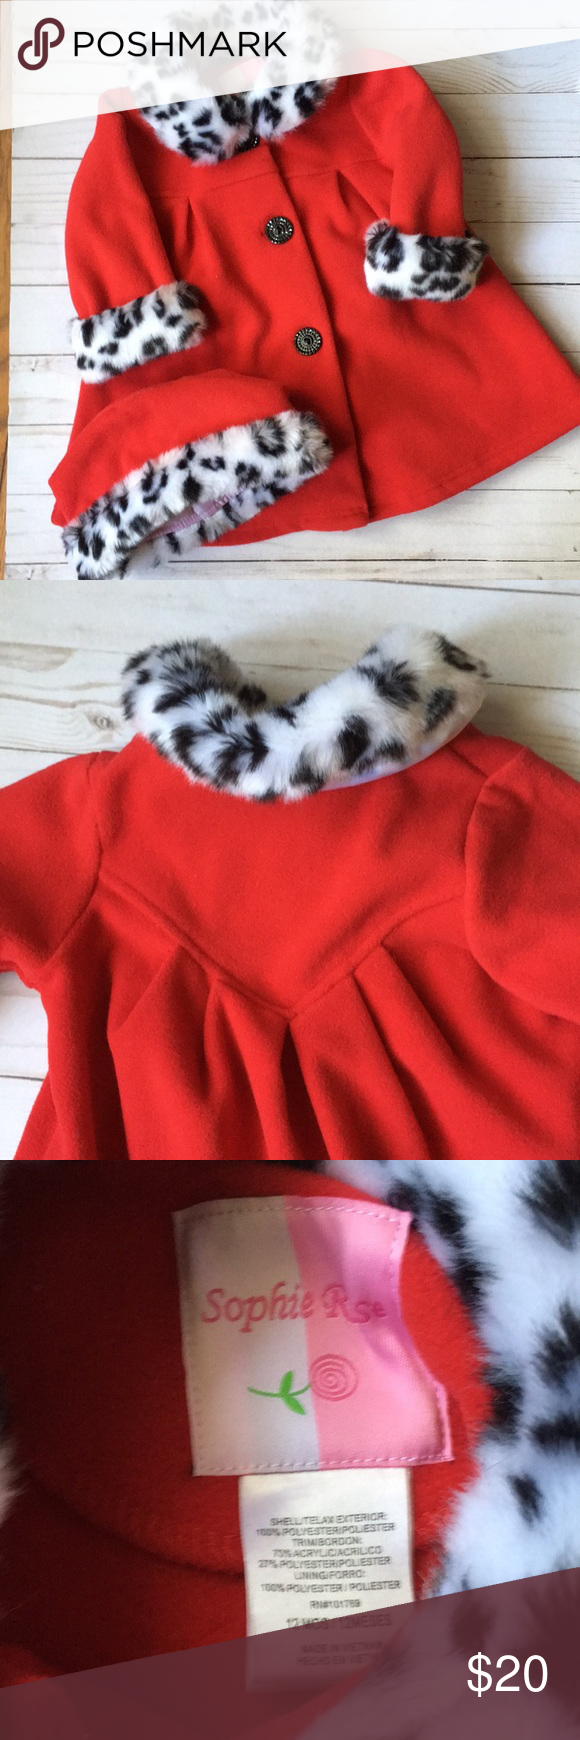 Red flannel 2018  NWOT Red Flannel and Fur Trimmed Coat and Hat Adorable NWOT Red